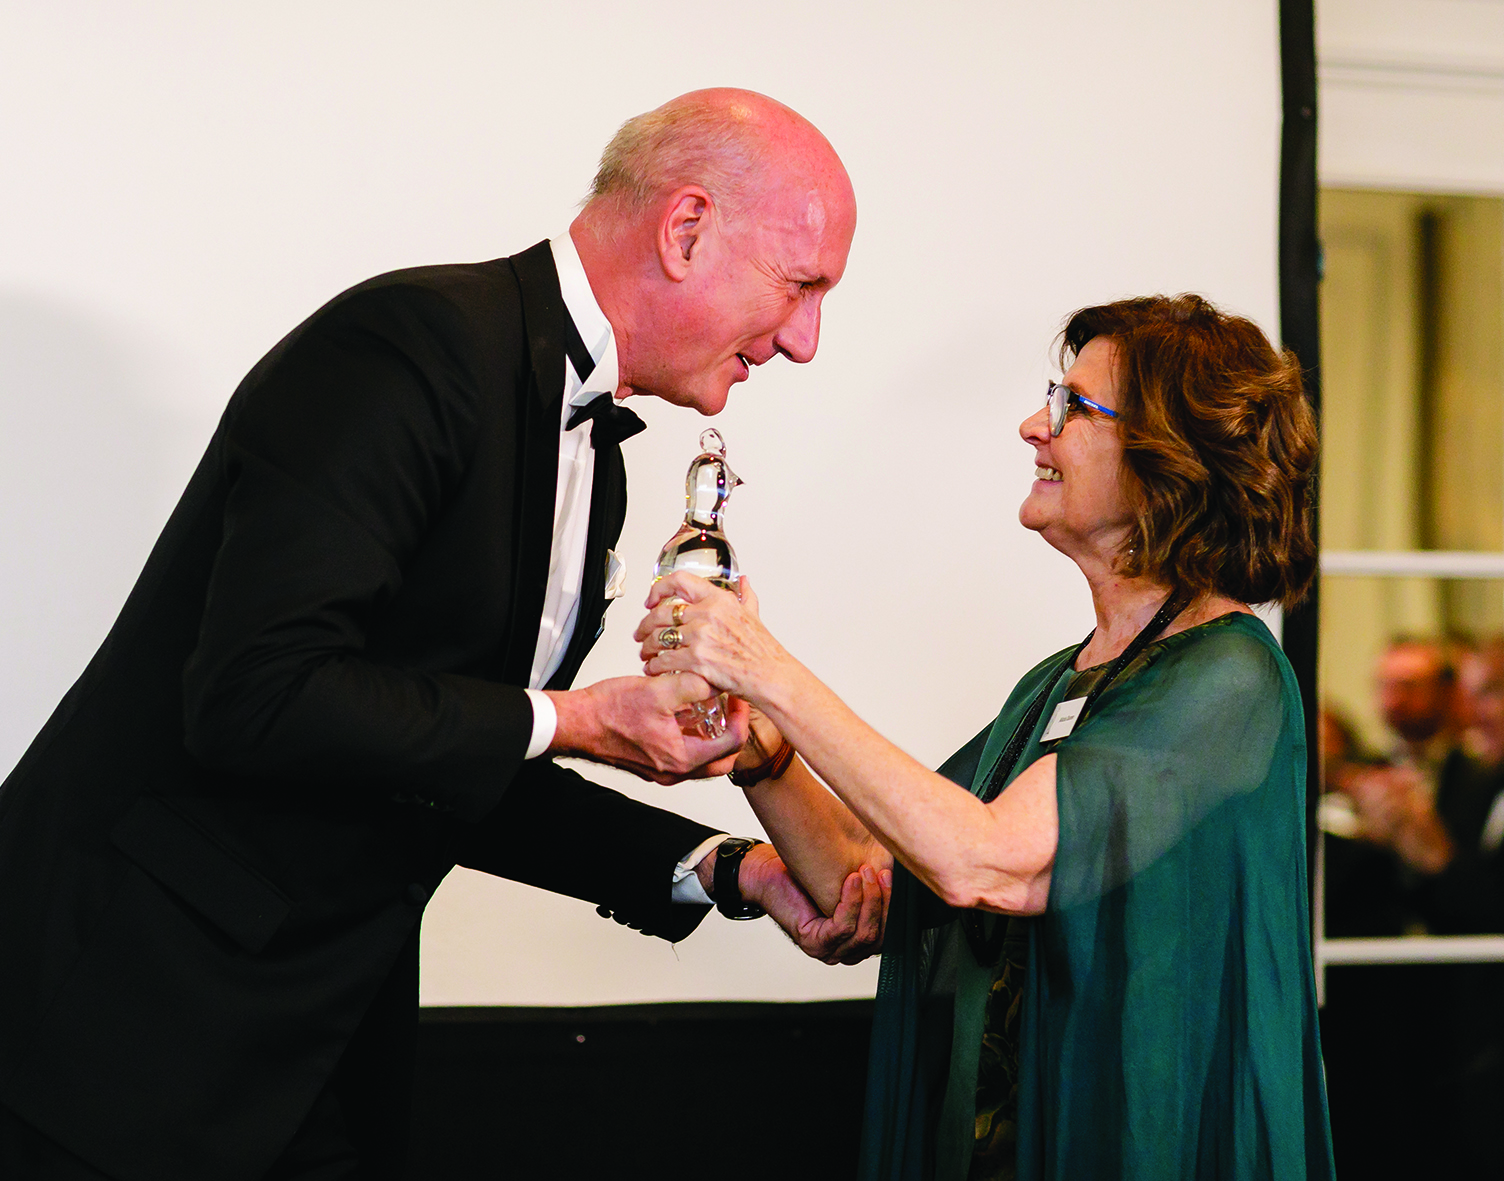 A passion for glass celebrated at Madrid Phoenix Award ceremony